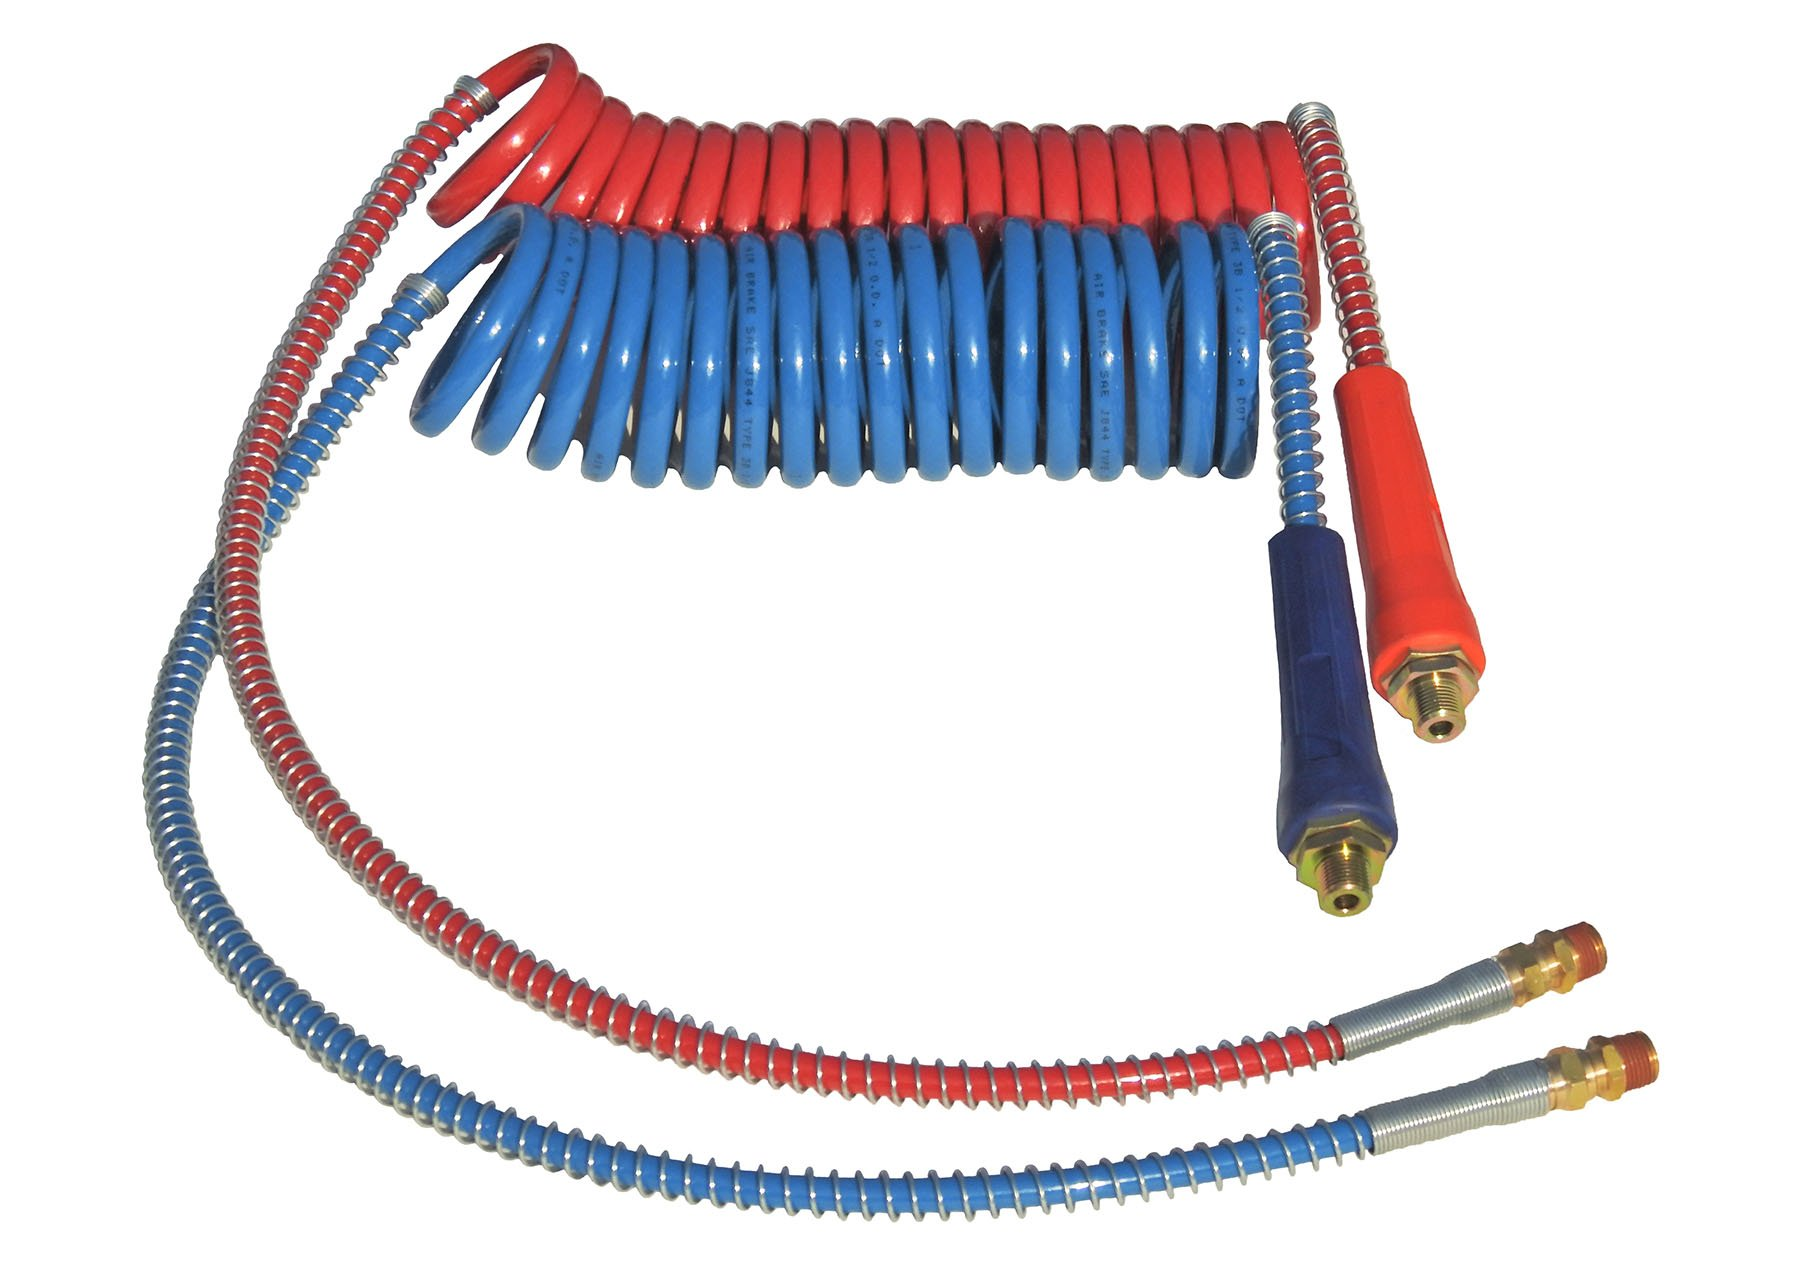 COILED AIR SET LINE ASSEMBLY RED & BLUE TRUCK TRAILER SET WITH DURA-GRIPS, 15' LENGTH: 1 X 12'' & 1 X 40'' LEADS by Road King Truck Parts